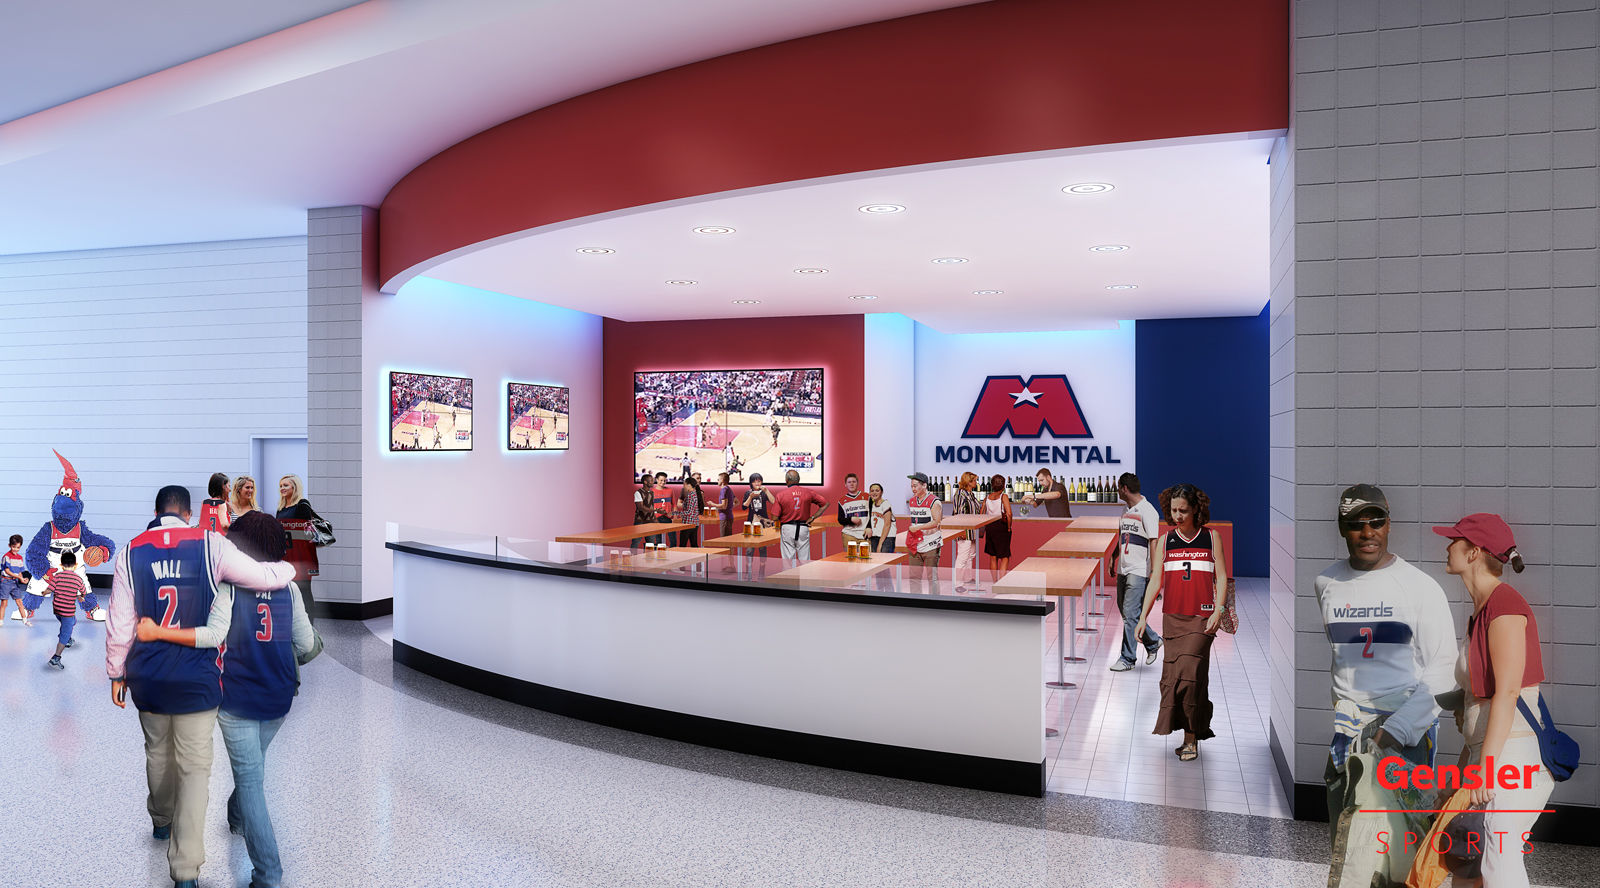 The renovations will begin at the end of the 2017-2018 NBA and NHL seasons and are expected to be completed by fall 2018. (Courtesy Gensler Sports)